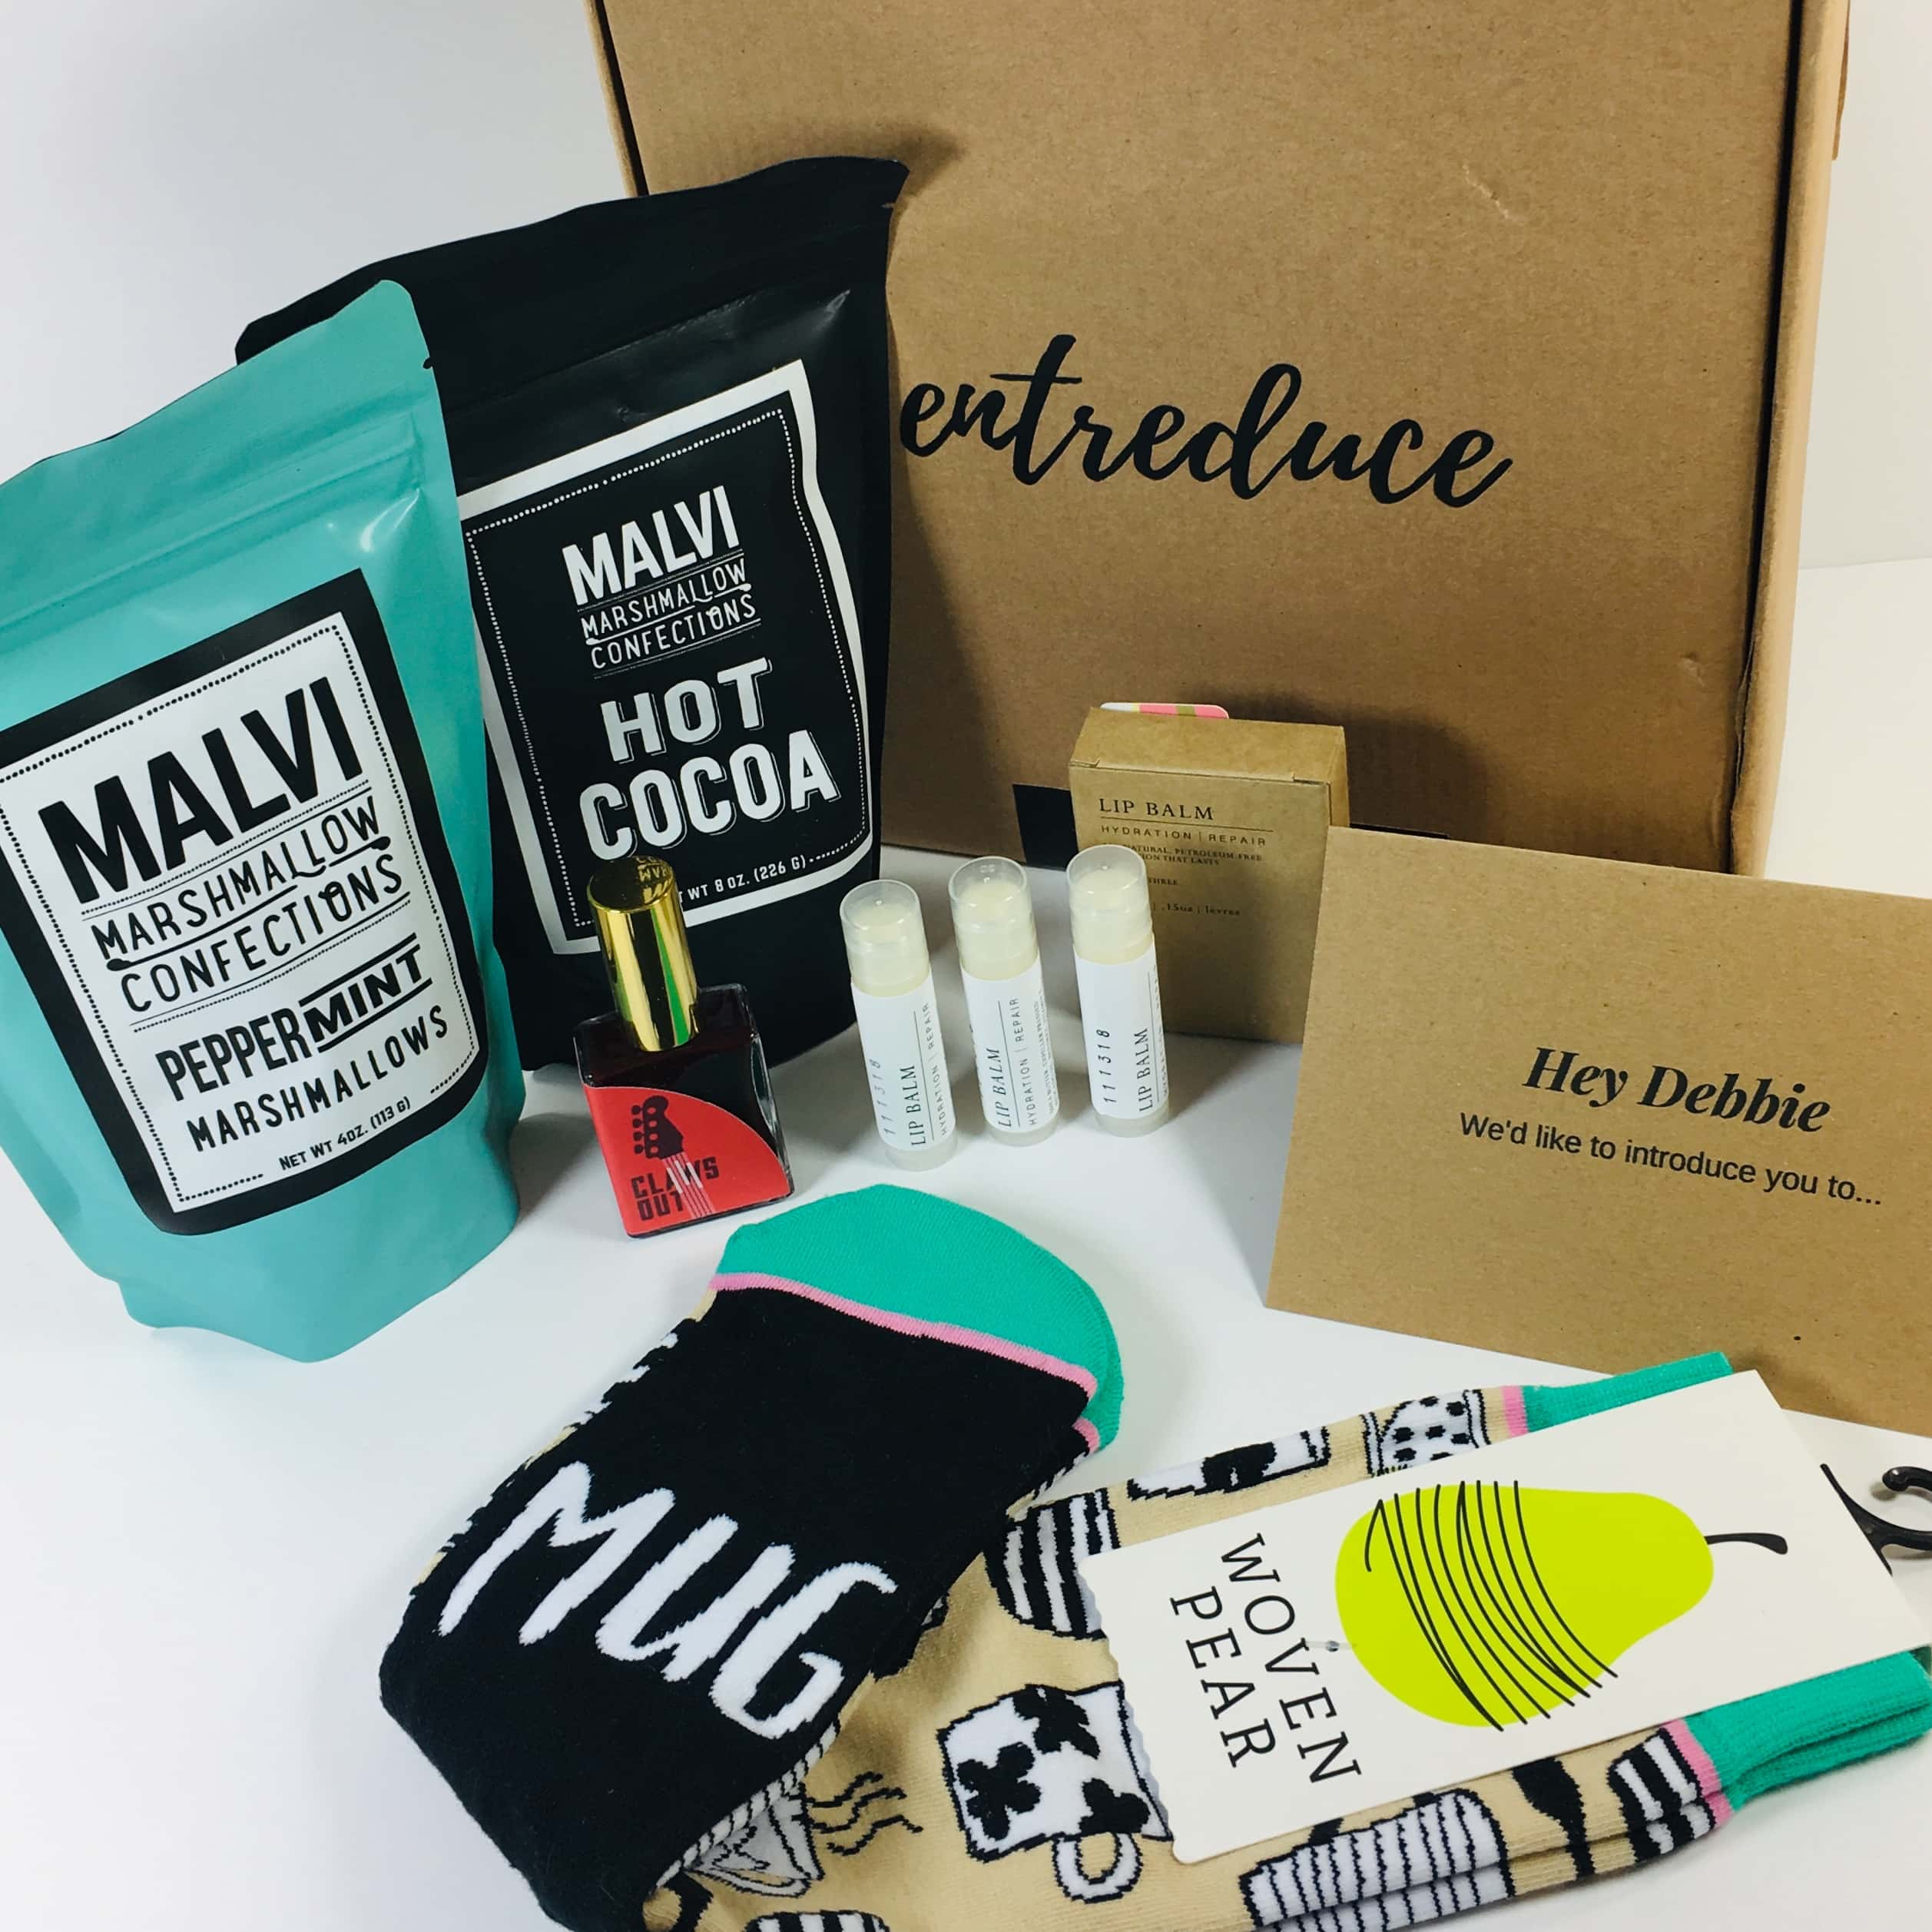 Entreduce December 2018 Subscription Box Review + Coupon!